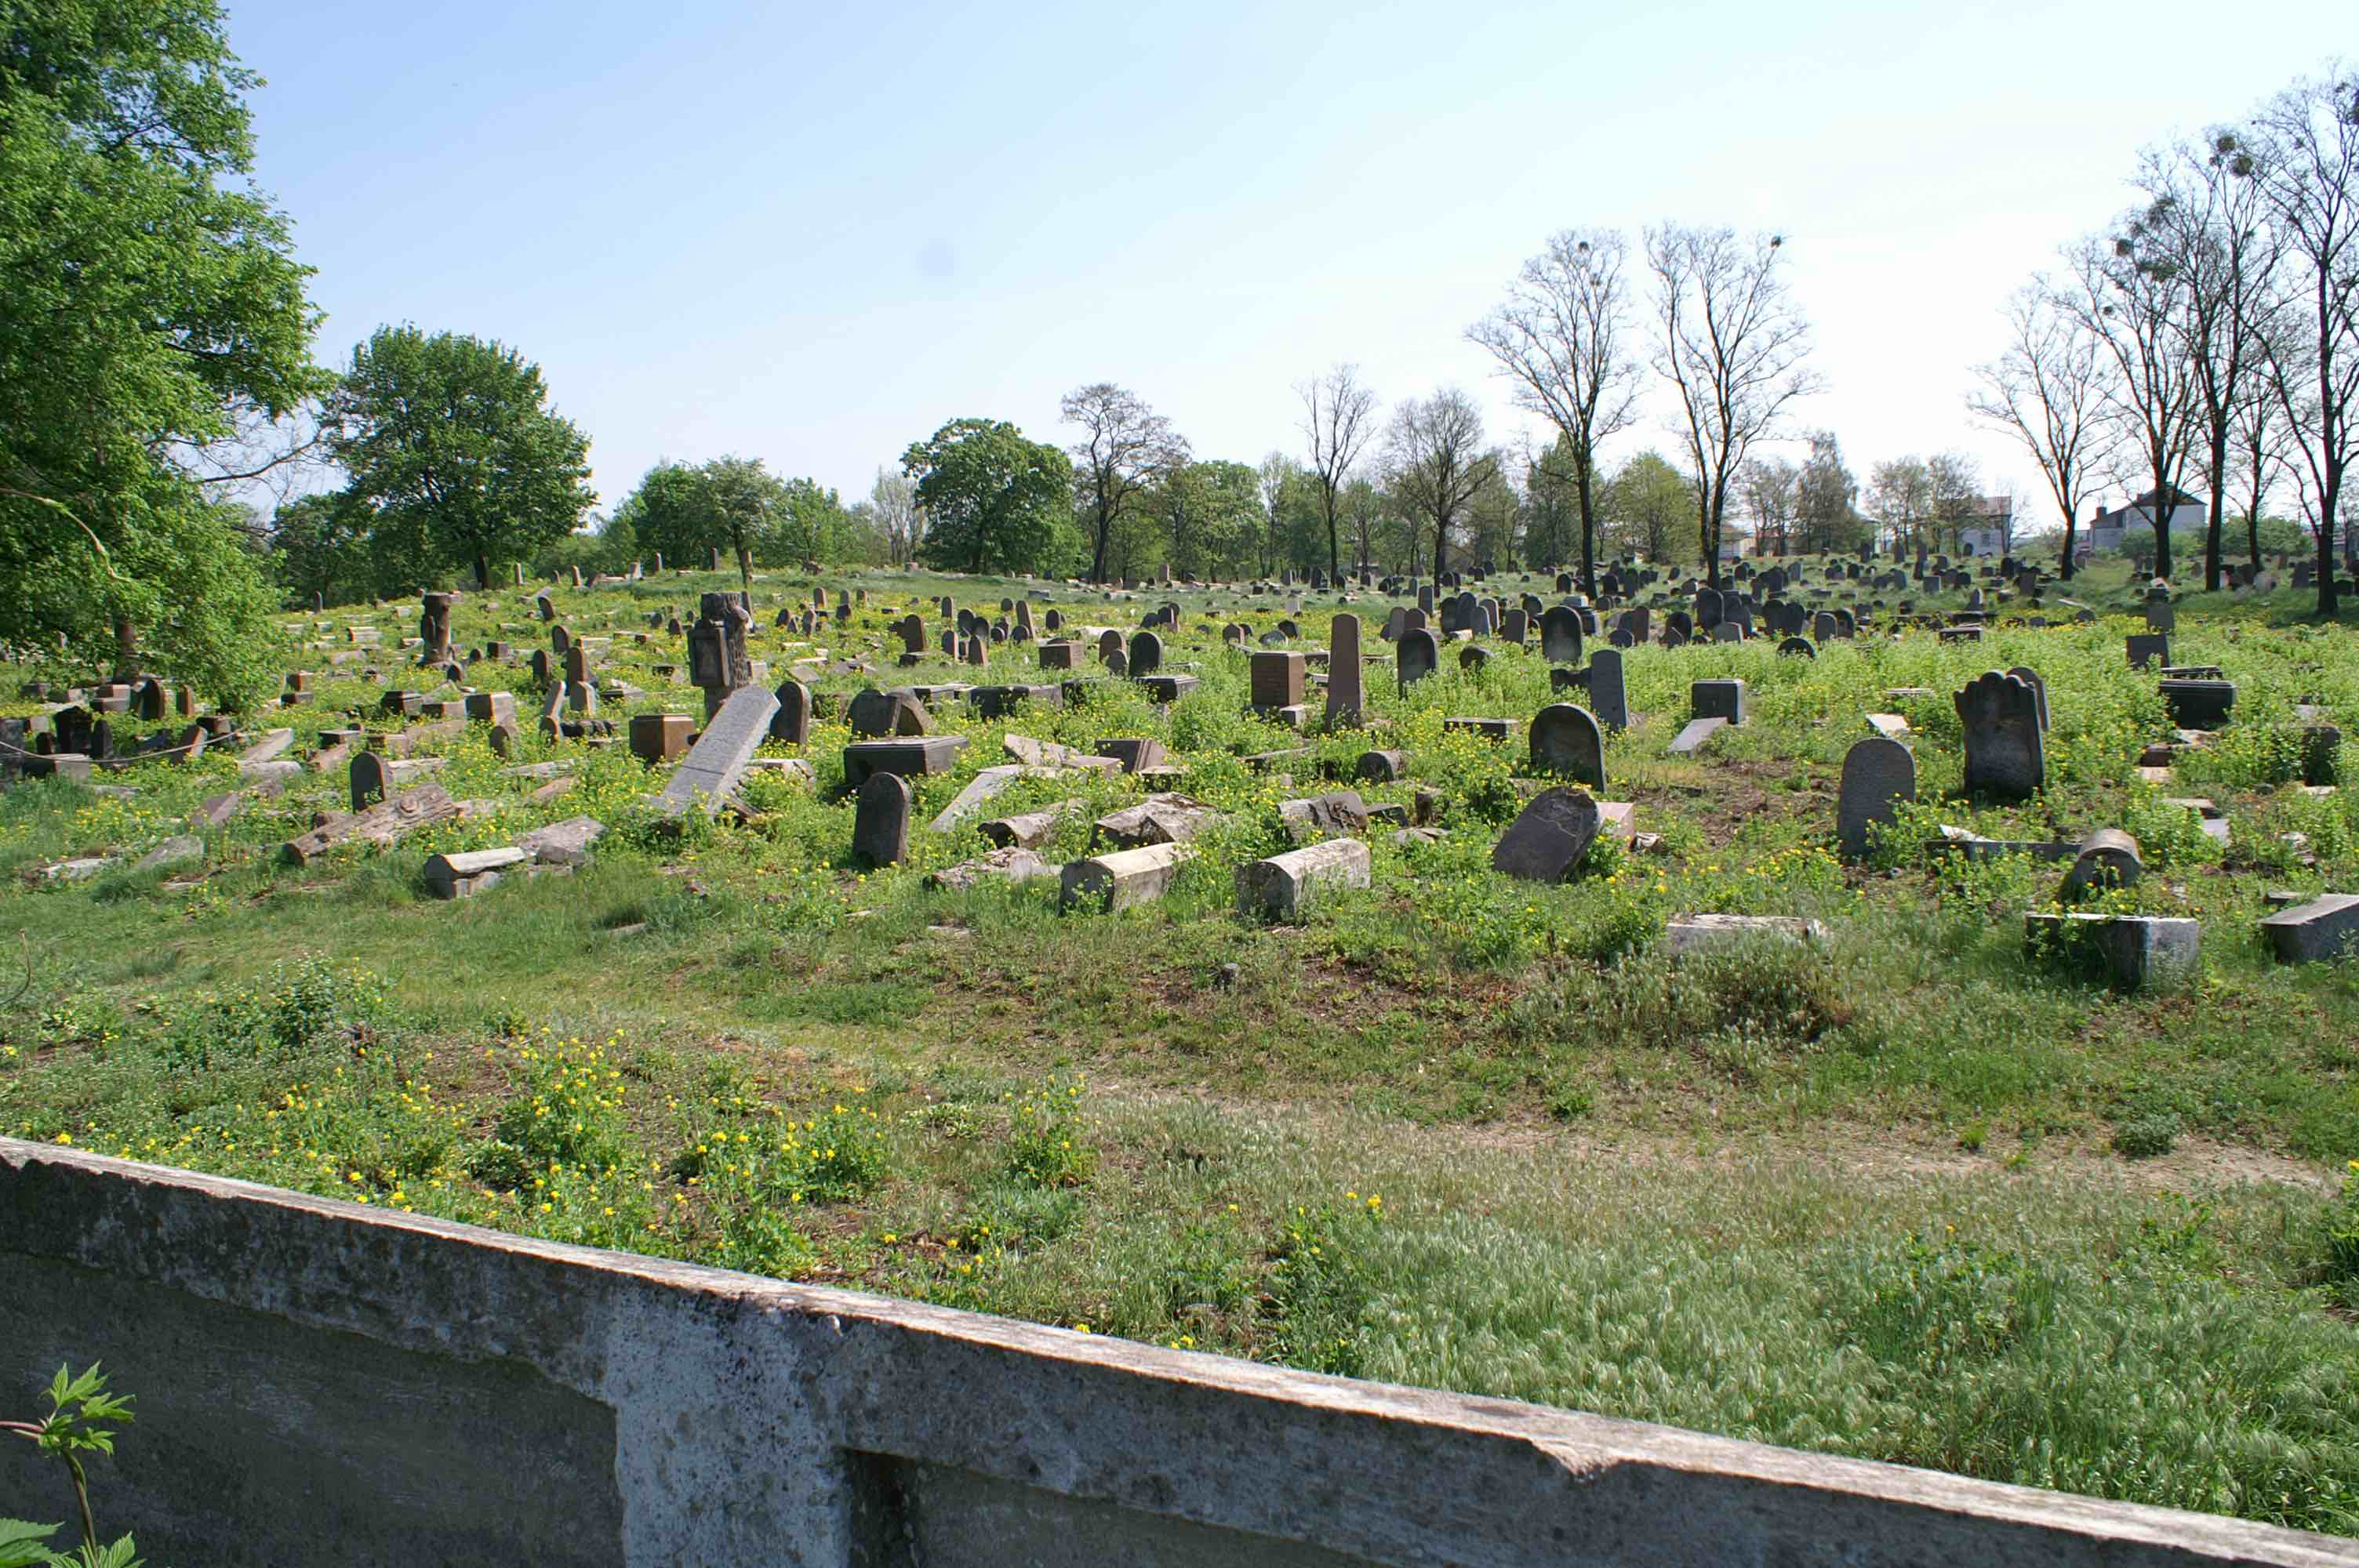 Bagnówka cemetery in 2007, before the renovation. Photo: Heidi M. Szpek